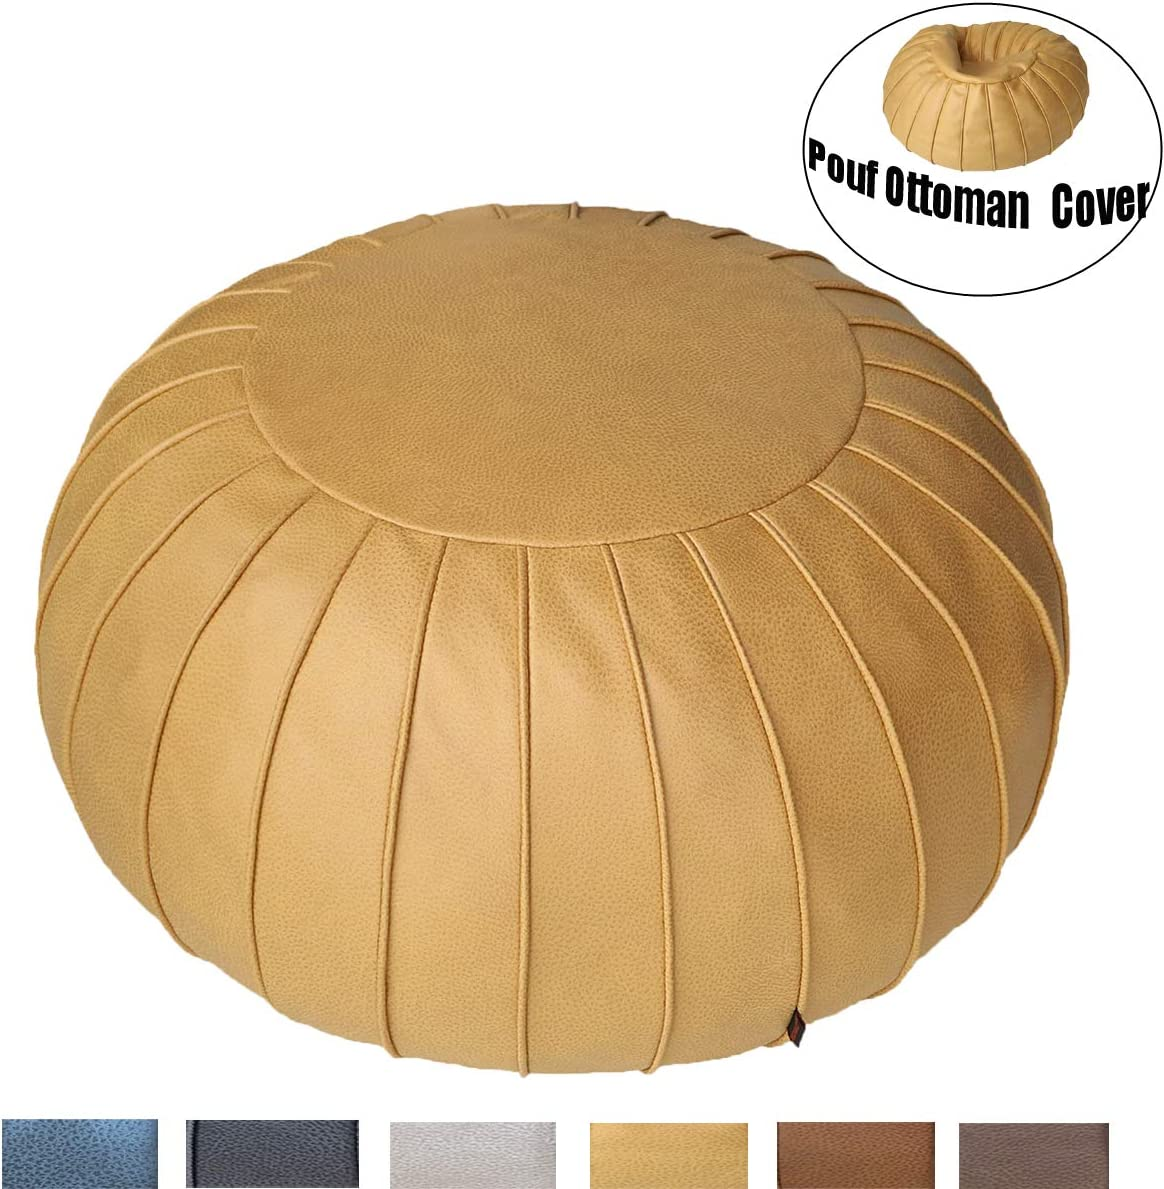 Thgonwid Unstuffed Suede Pouf Cover, Ottoman, Bean Bag Chair, Round Floor Cushion Foot Stool, Foot Rest, Storage Solution poufs for Living Room, Kids Room or Wedding (Yellow)